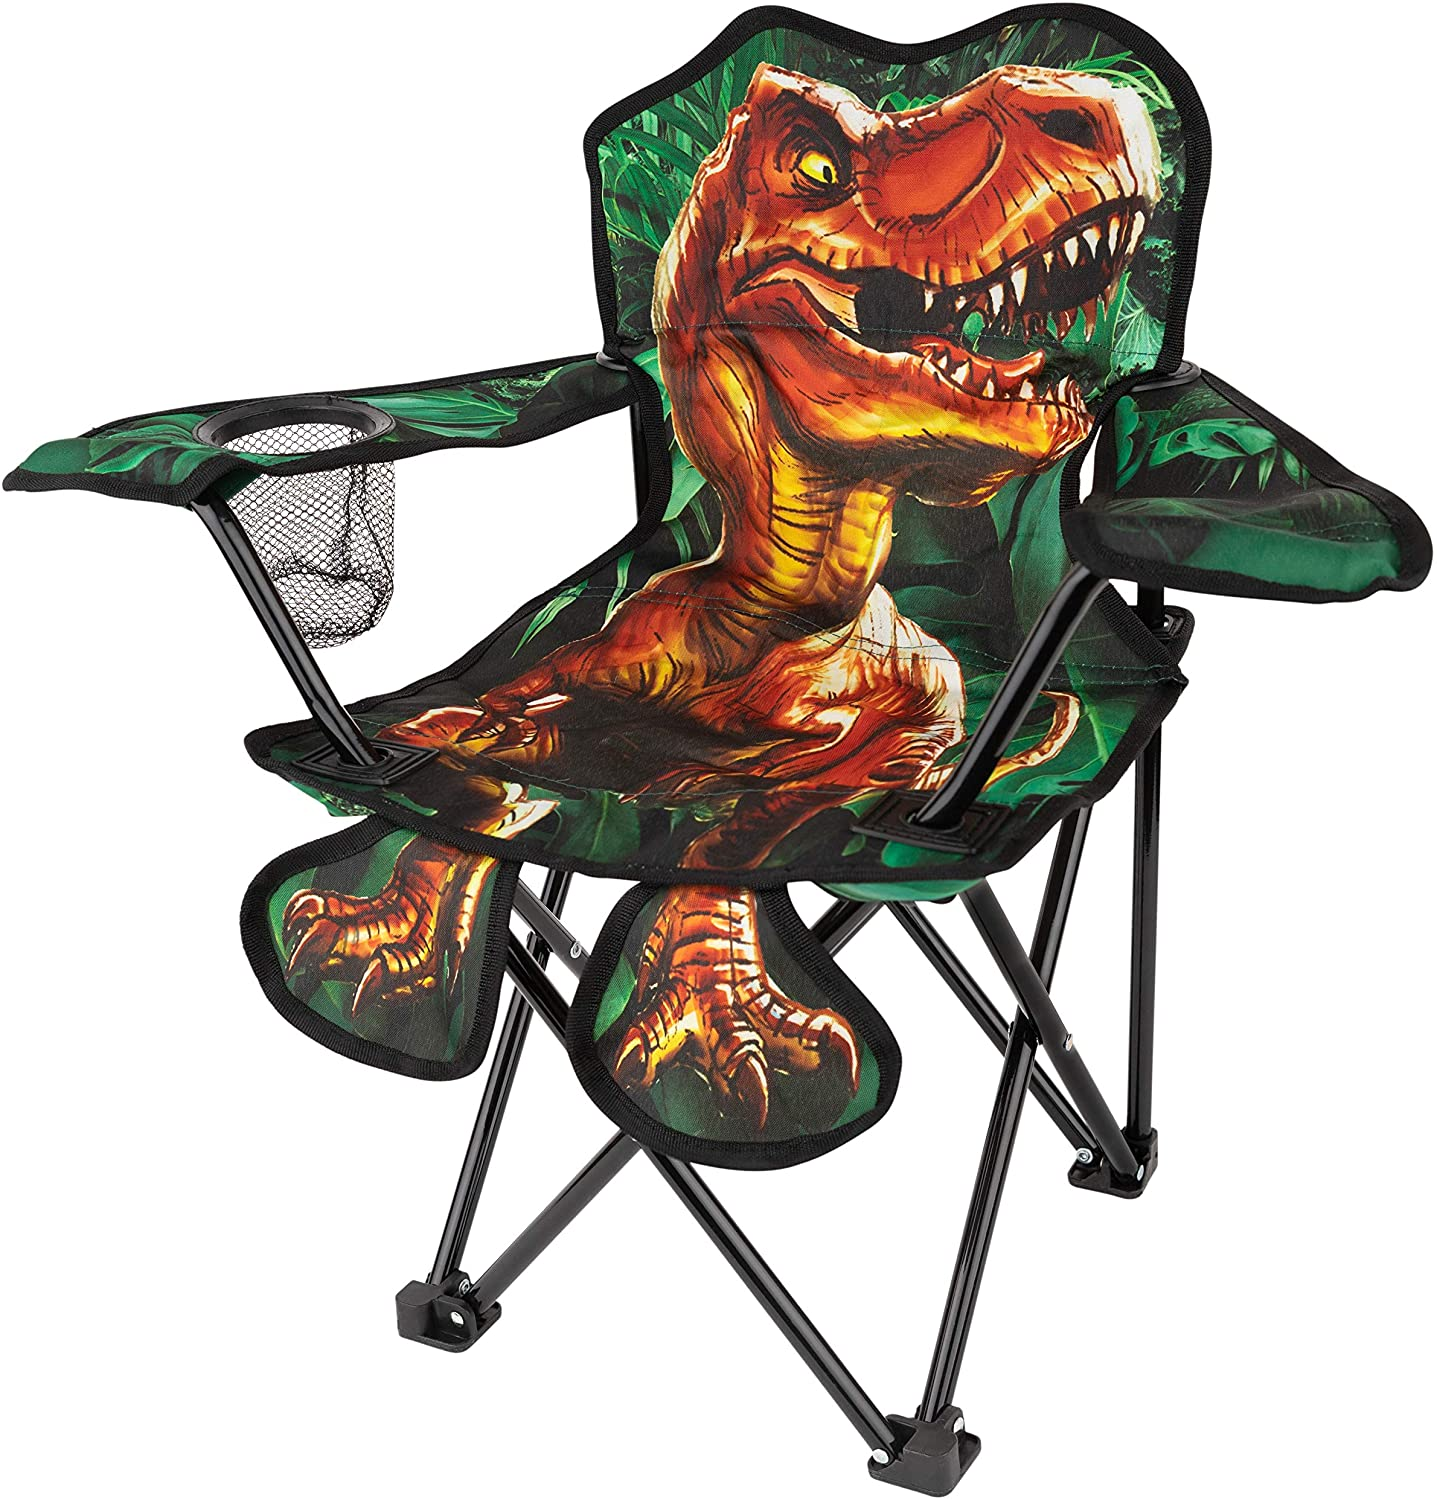 Toy-To-Enjoy Outdoor Dinosaur Chair for Kids – Foldable Children's Chair for Camping, Tailgates, Beach, Fishing, – Portable Carrying Bag Included Mesh Cup Holder & Sturdy Construction. Ages 5 to 10